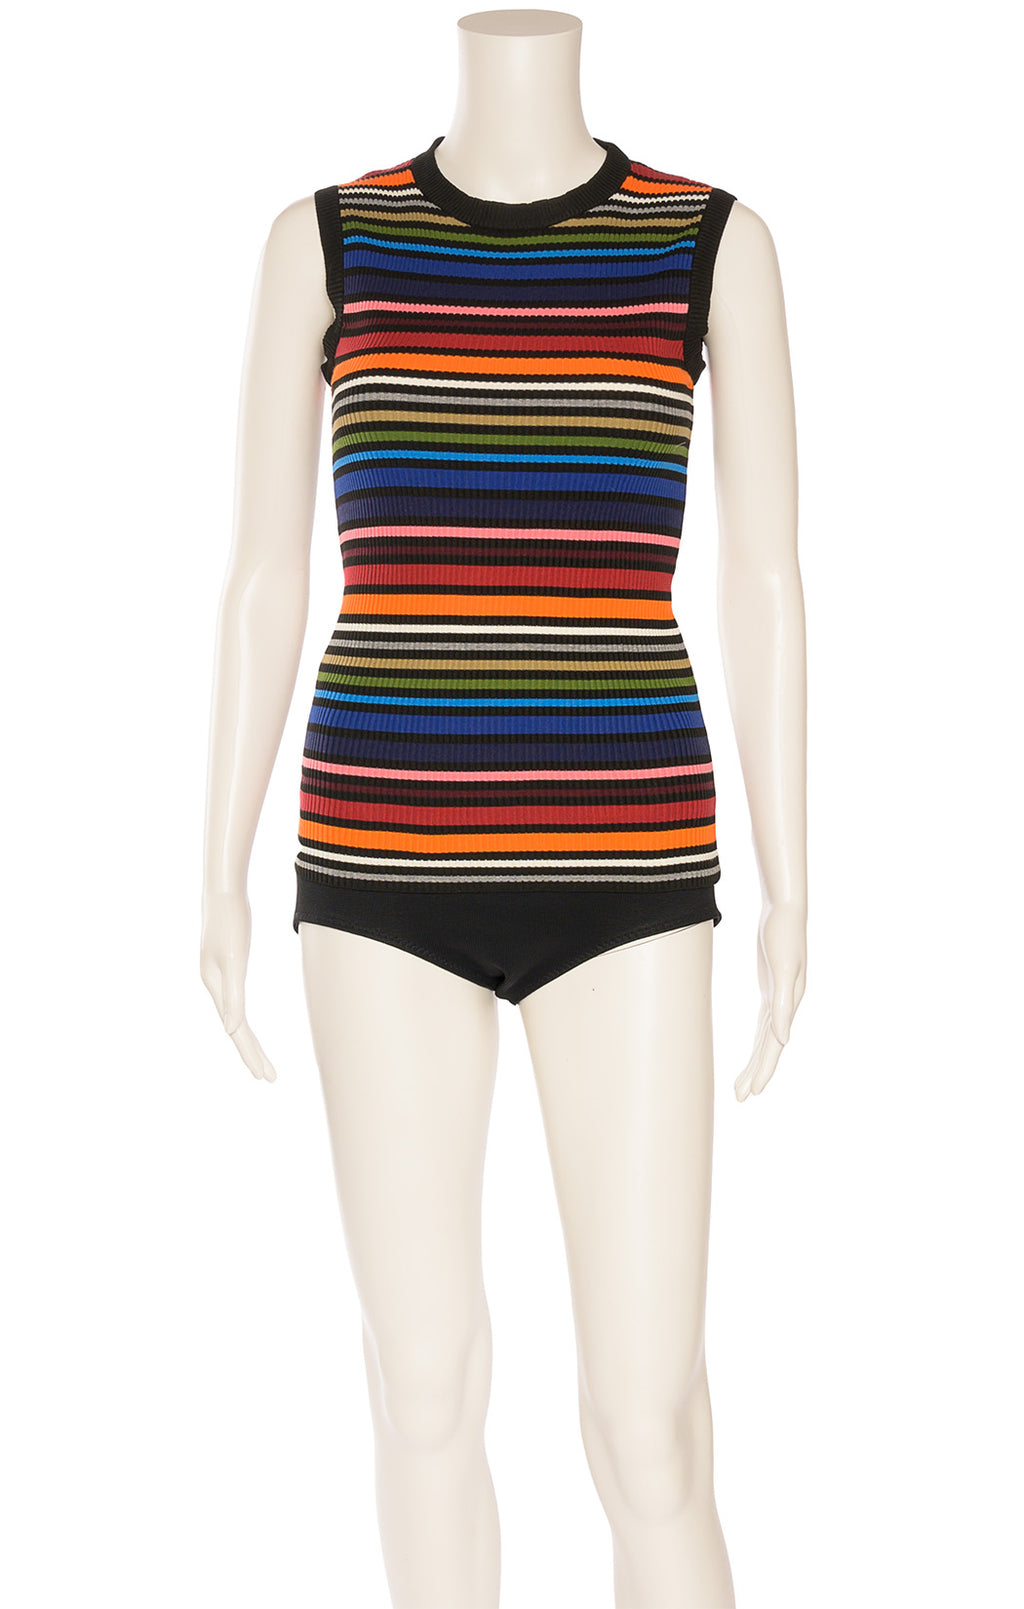 Multi colored strip knit like sleeveless top